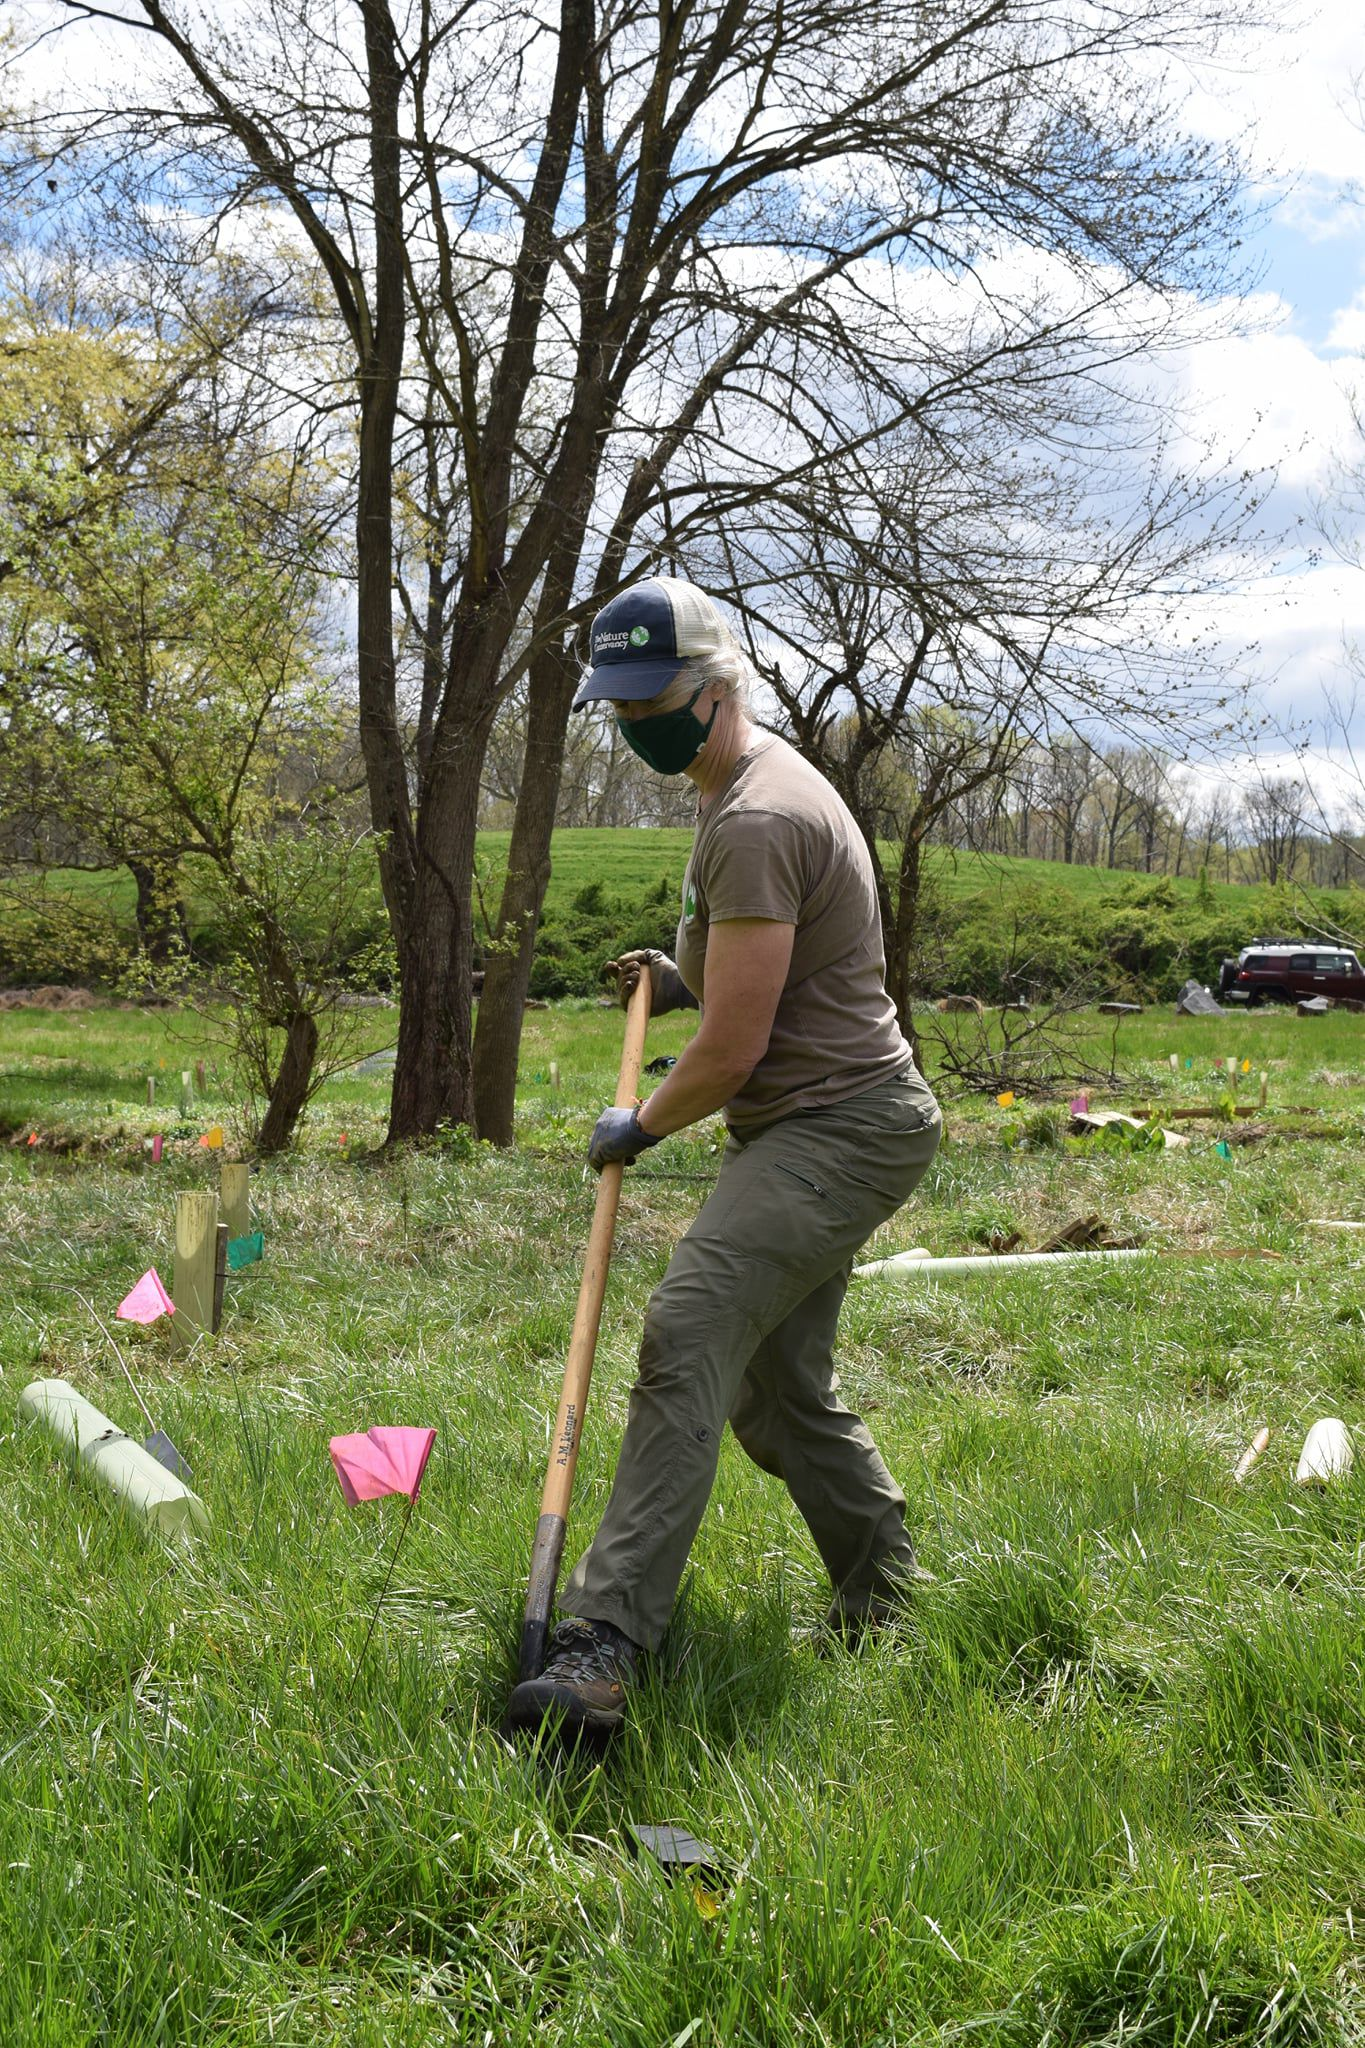 A woman wearing a black face mask uses a long handled shovel to dig a hole for a tree sapling in an open park during a volunteer work day.